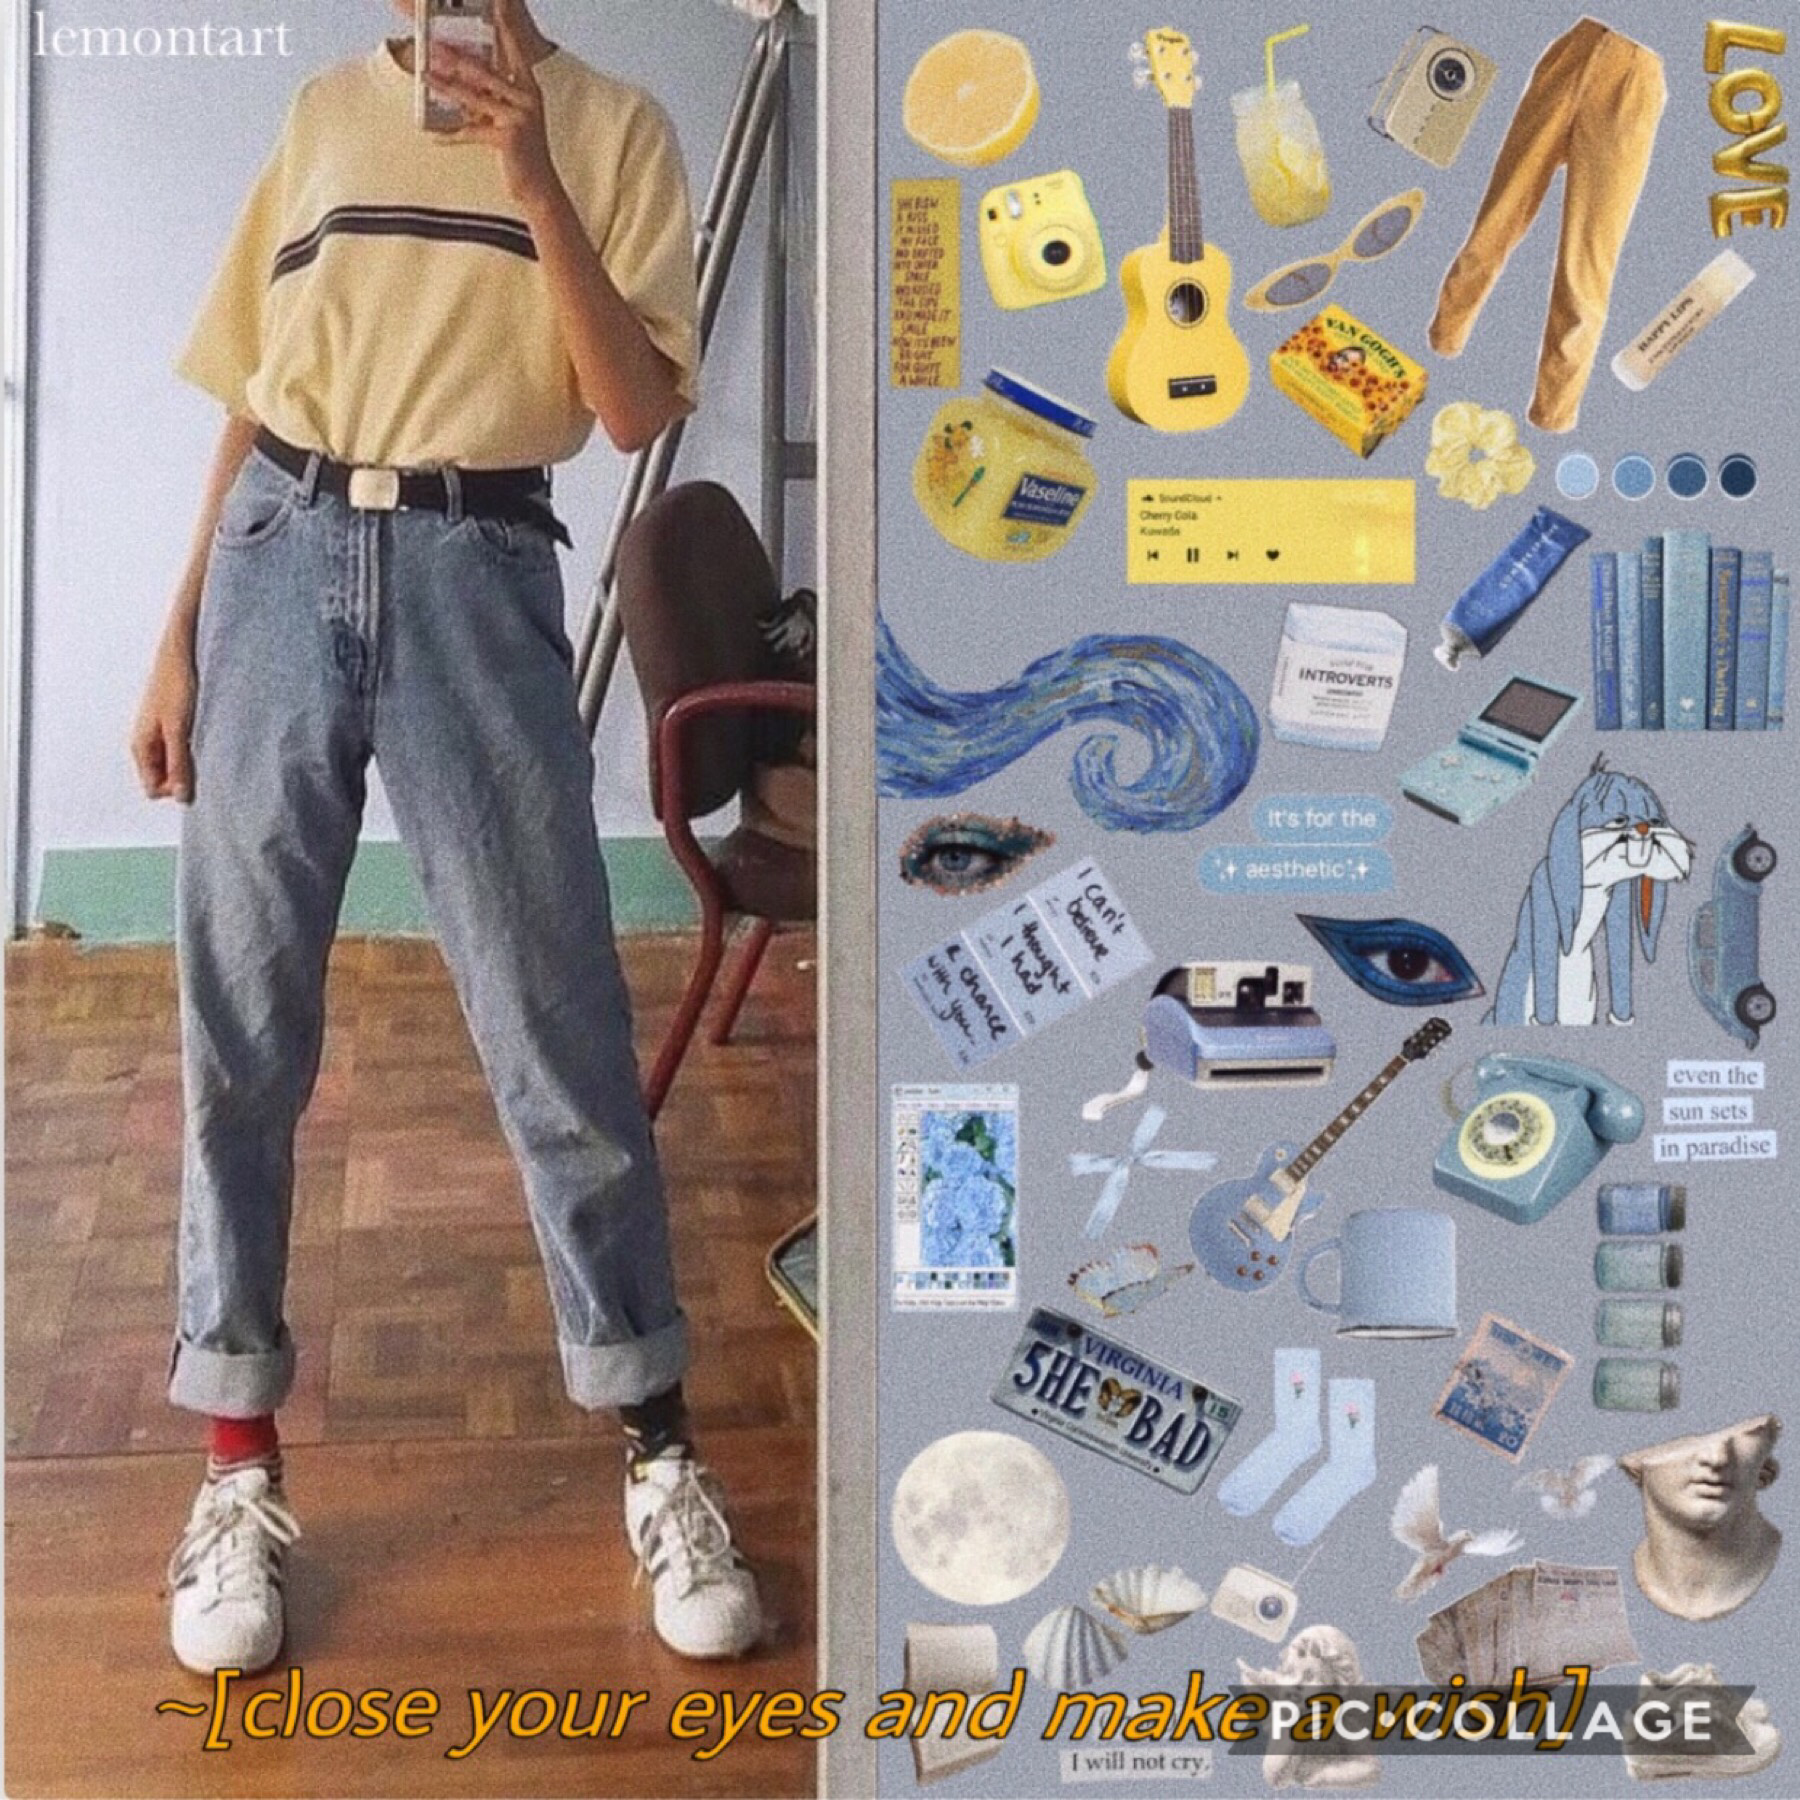 2019.07.07 (tip tap) what's up my dudes? i now present to you my trash collage that i whipped up today. update me on your life :) it's been awhile, and i want to know what's going on with you wonderful people